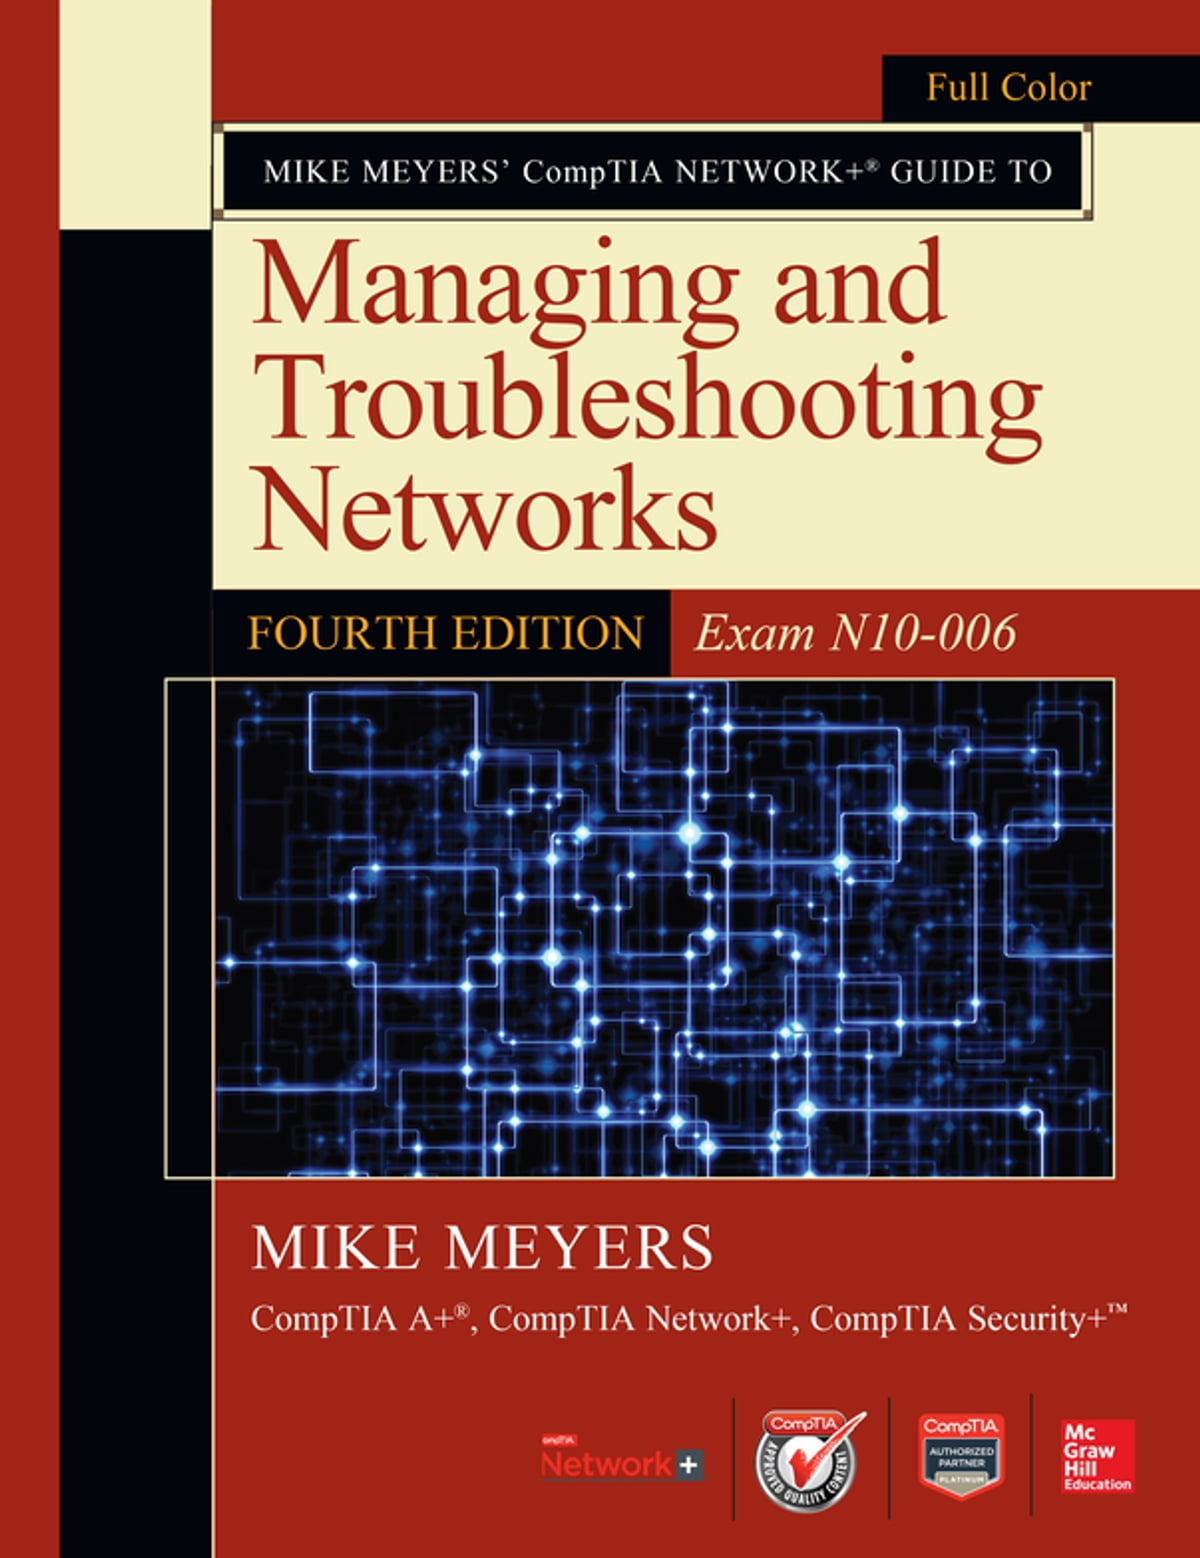 Mike Meyers' CompTIA Network+ Guide to Managing and Troubleshooting  Networks, Fourth Edition (Exam N10-006) eBook por Mike Meyers -  9780071848251 | Rakuten ...